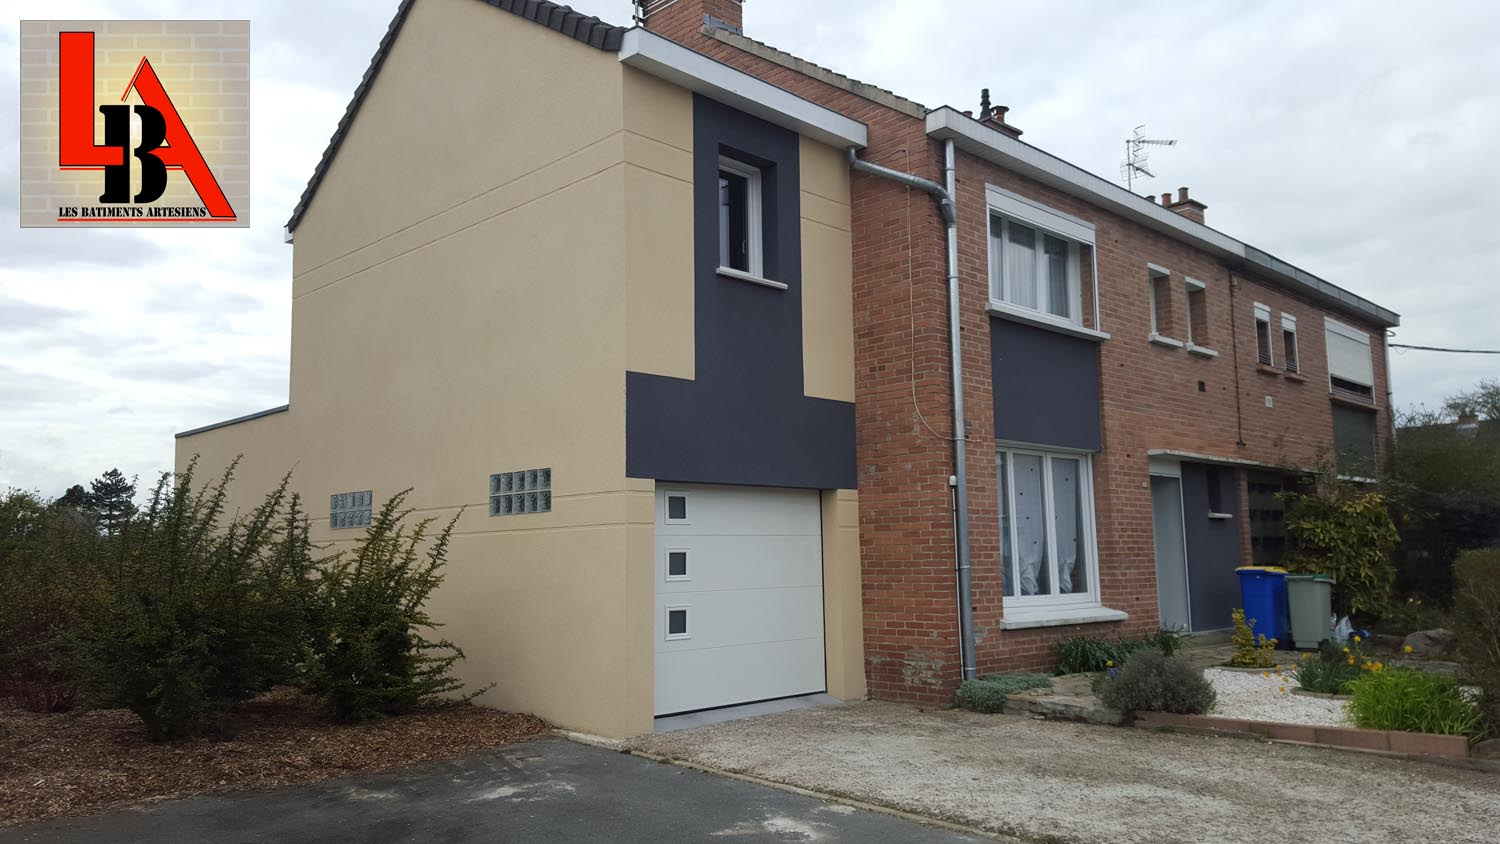 maison avant travaux extension renovation arras douai bethune lille